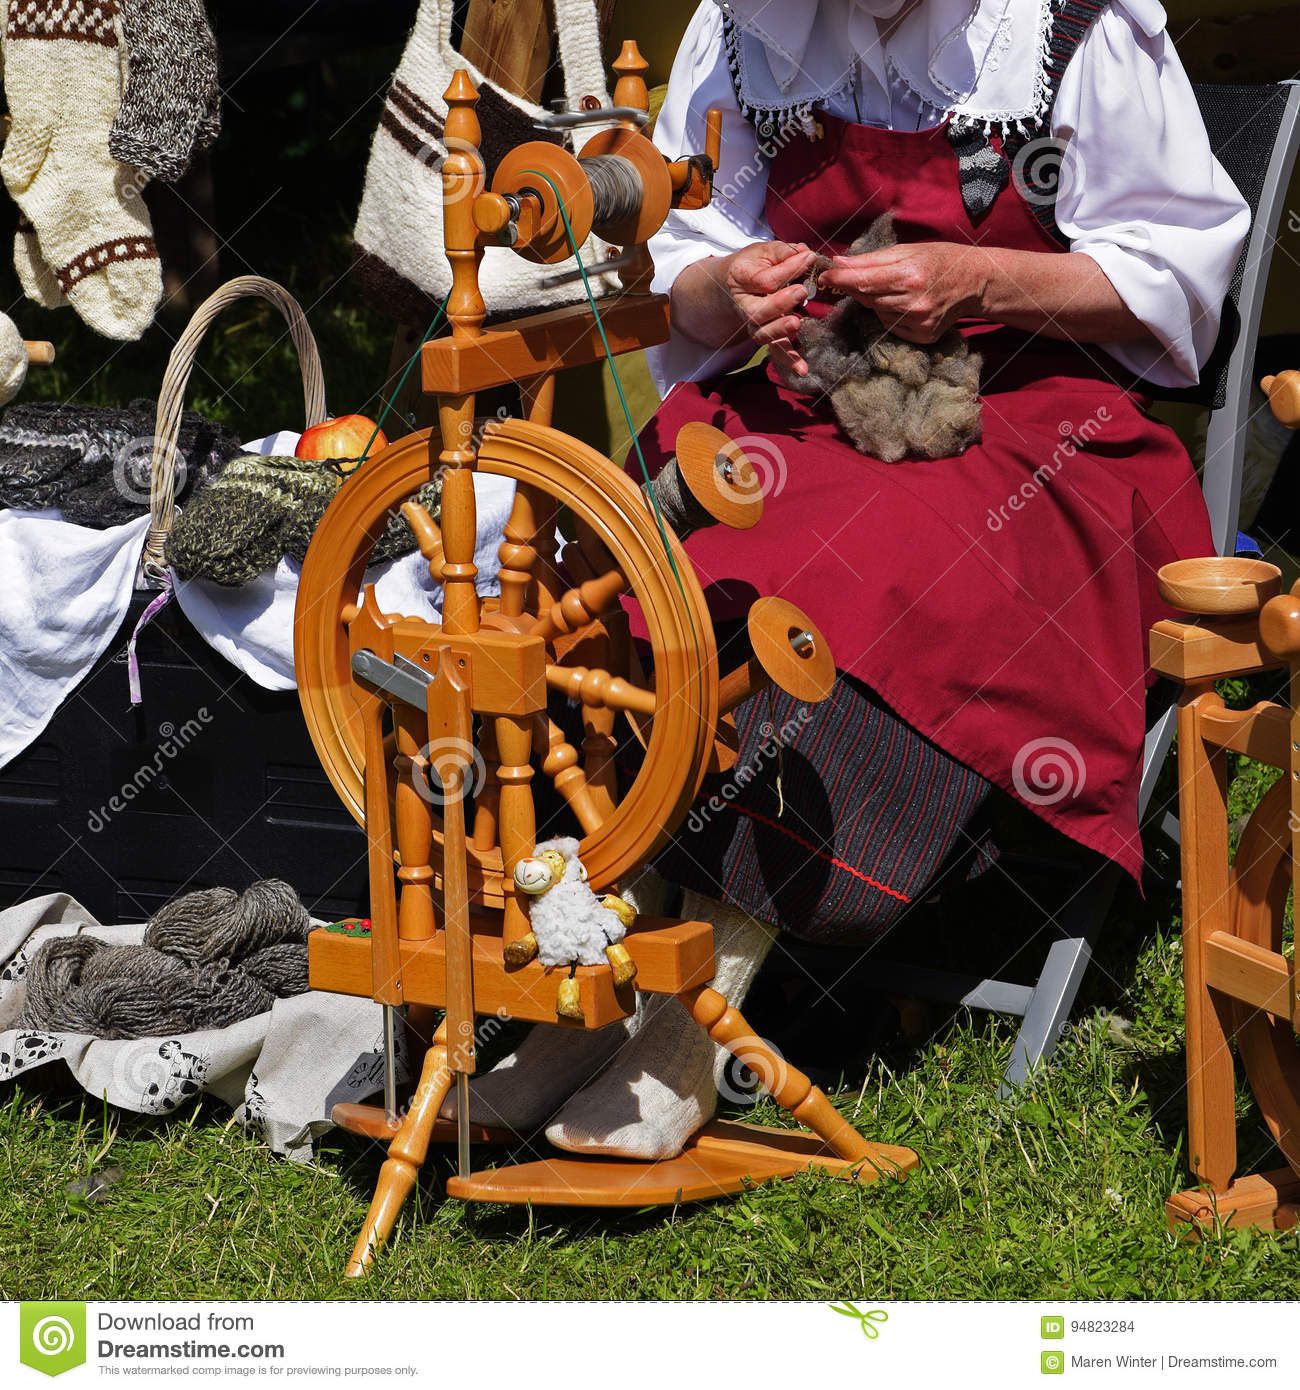 Woman with wool at the traditional spinning wheel on an medieval